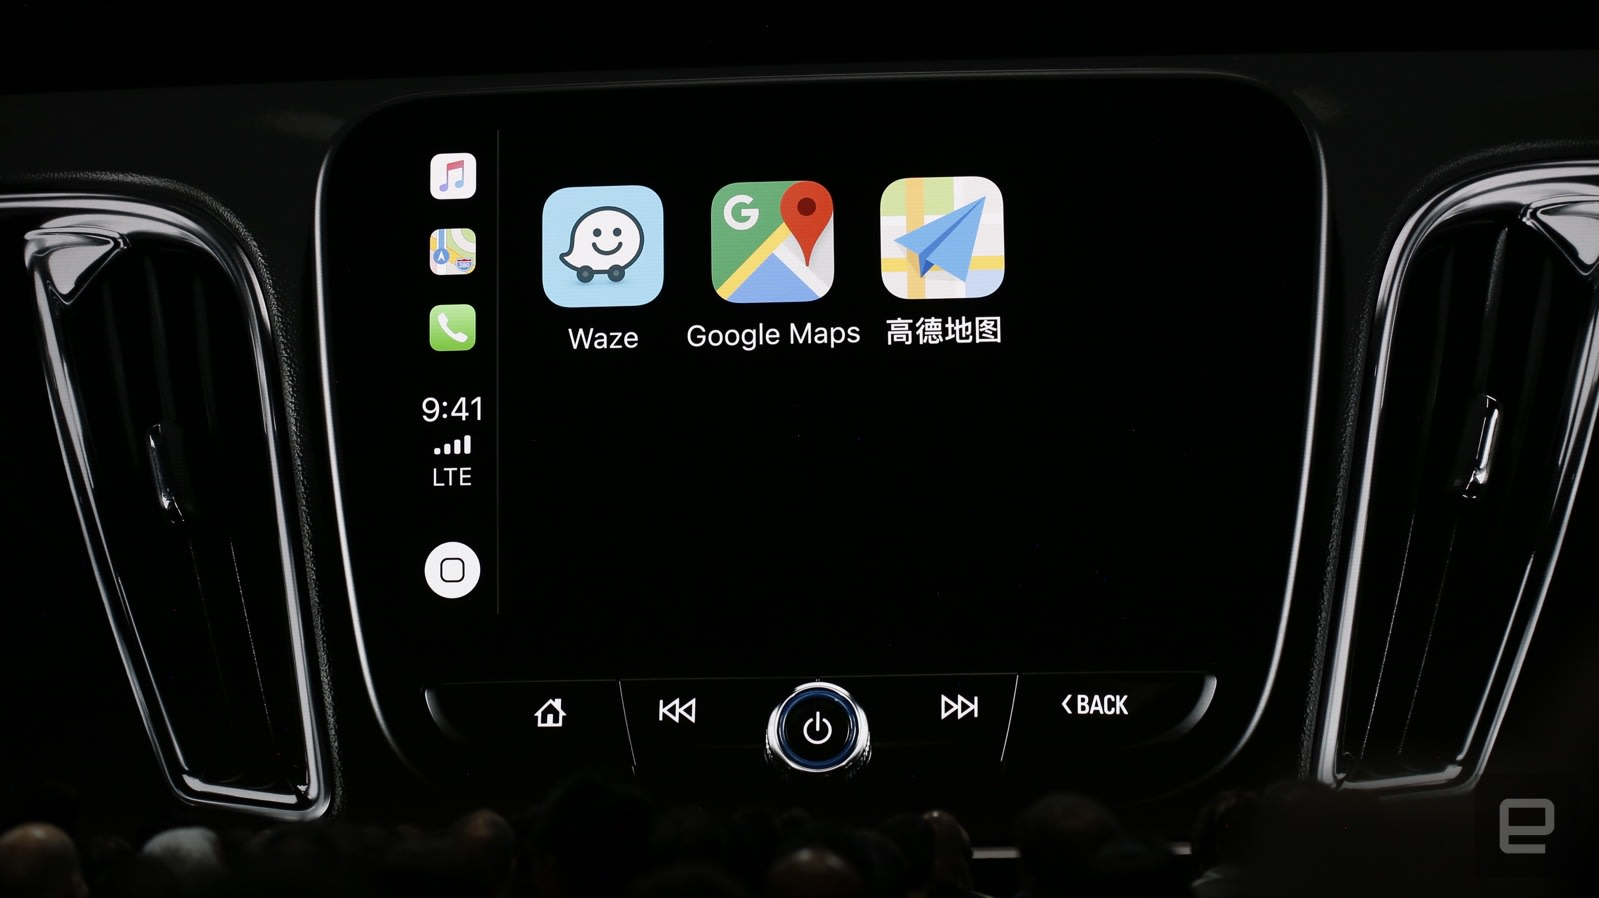 Apple CarPlay will add Google Maps and Waze support with iOS 12 on delaware map google, tacloban map google, mobile map google, new hampshire map google, luxembourg city map google, columbia map google, sierra vista map google, boca raton map google, portland map google, georgia map google, pearl harbor map google, baghdad map google, charlottesville map google, billings map google, yuma map google, iloilo city map google, kona map google, monaco map google, kahului map google, spokane map google,